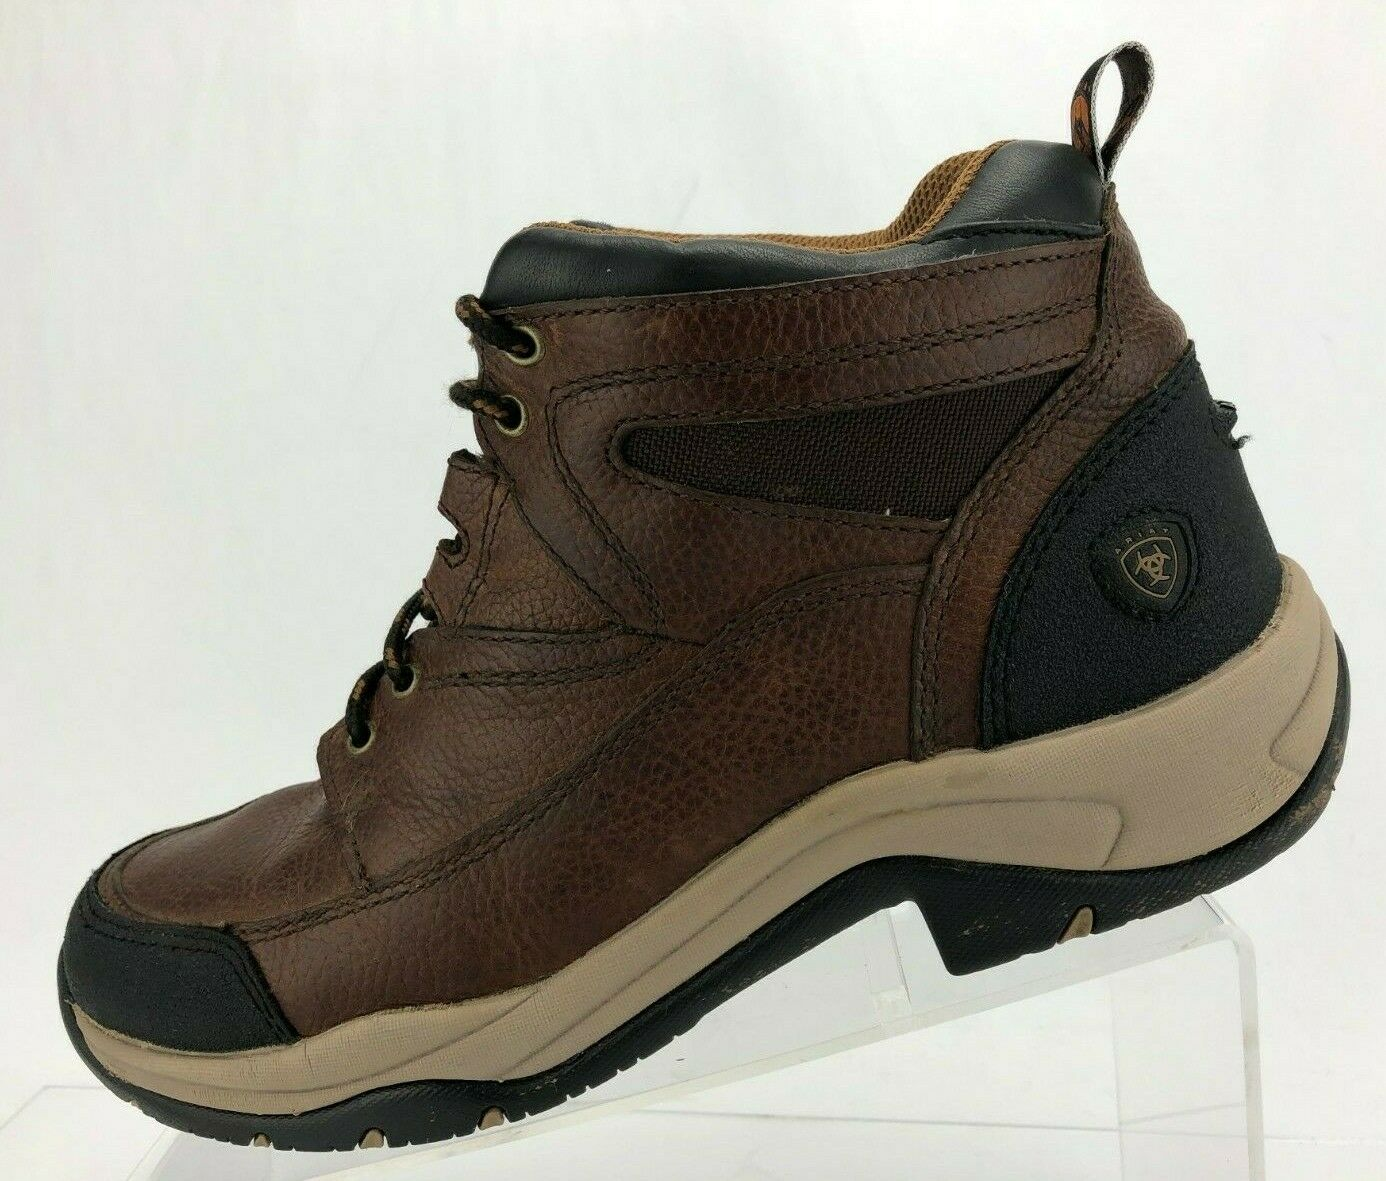 Ariat Ankle Boots Terrain Endurance Brown Lace Up Hiking Booties Womens US 10 B